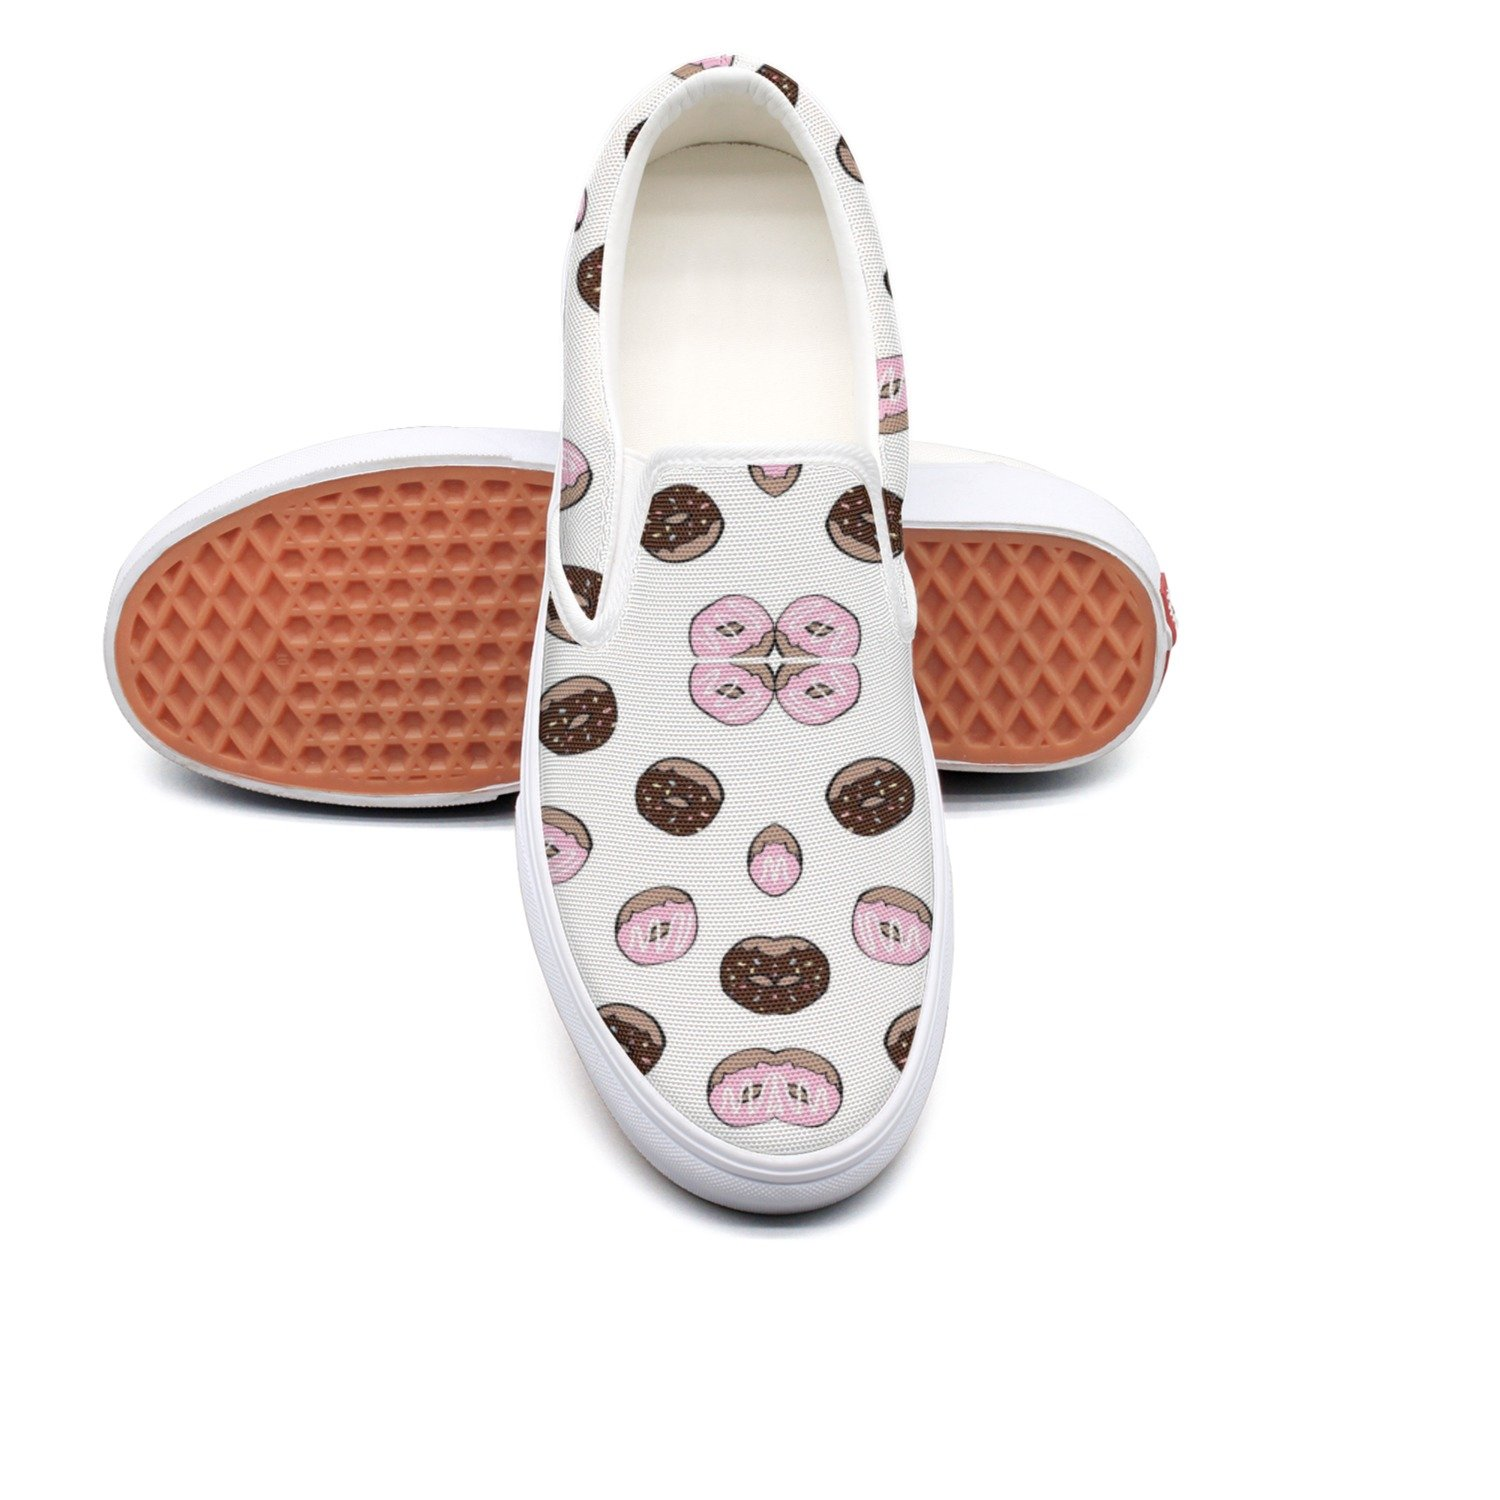 Loves Donuts Classic Women Canvas Slip-Ons Loafer Shoes Sneaker